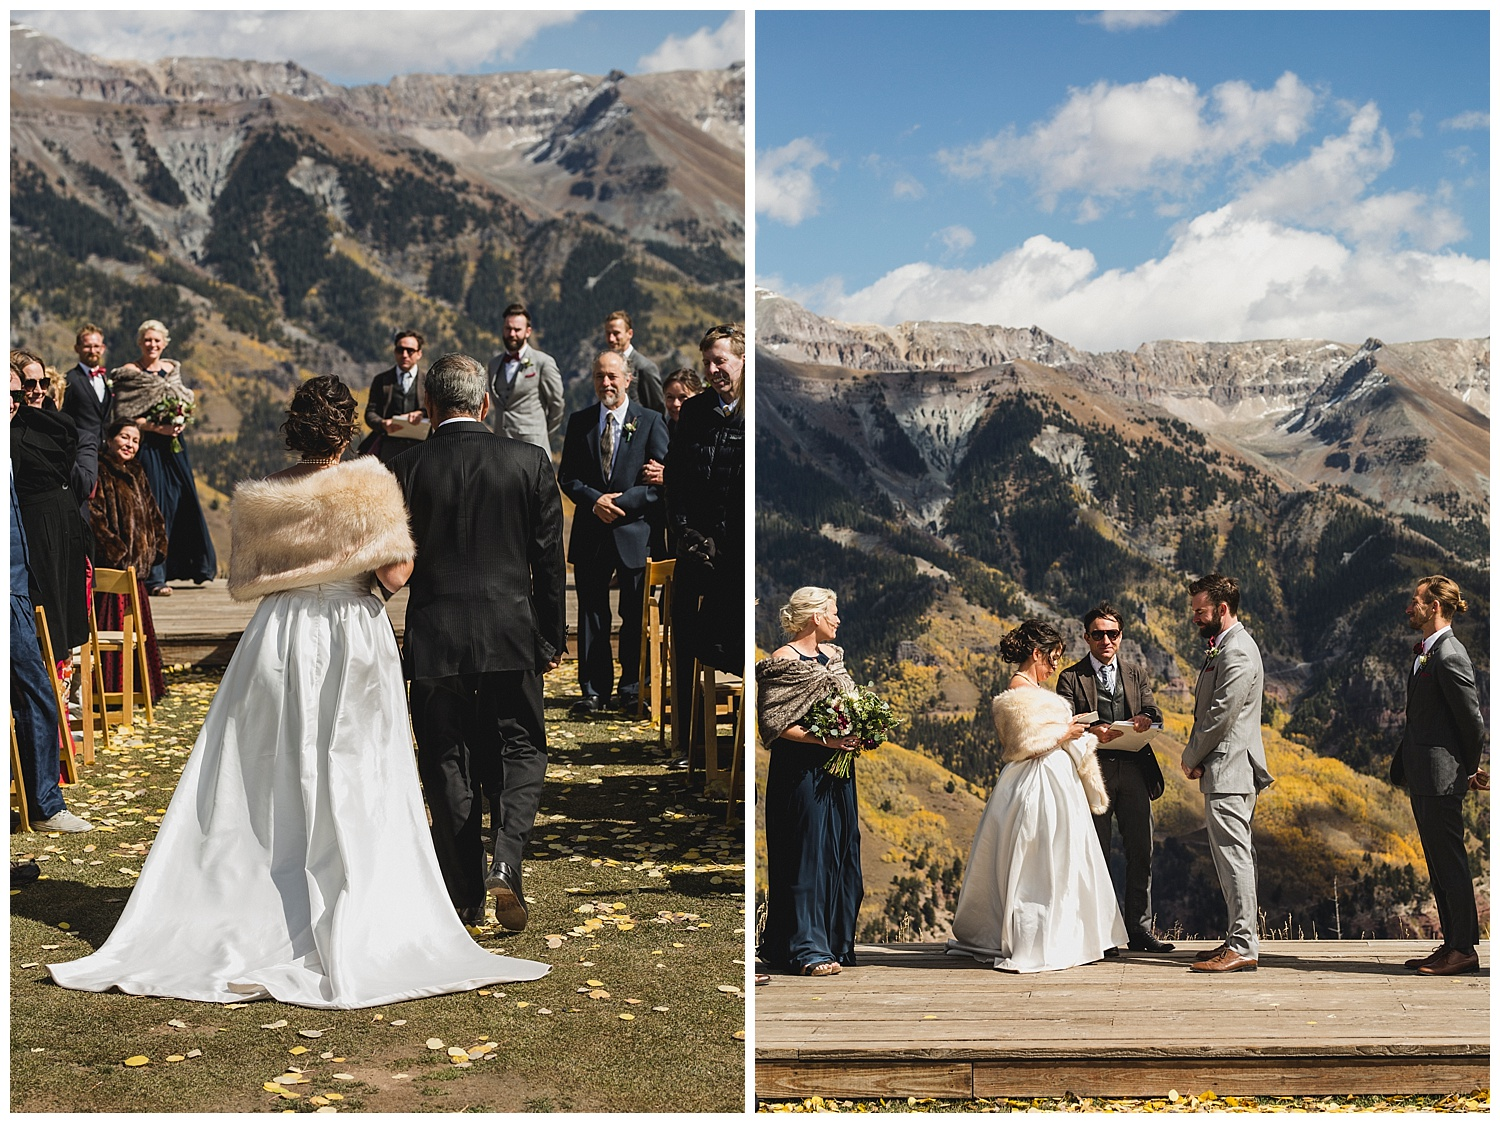 NE-leahandashtonphotography-Telluride-Colorado-Wedding_0018.jpg